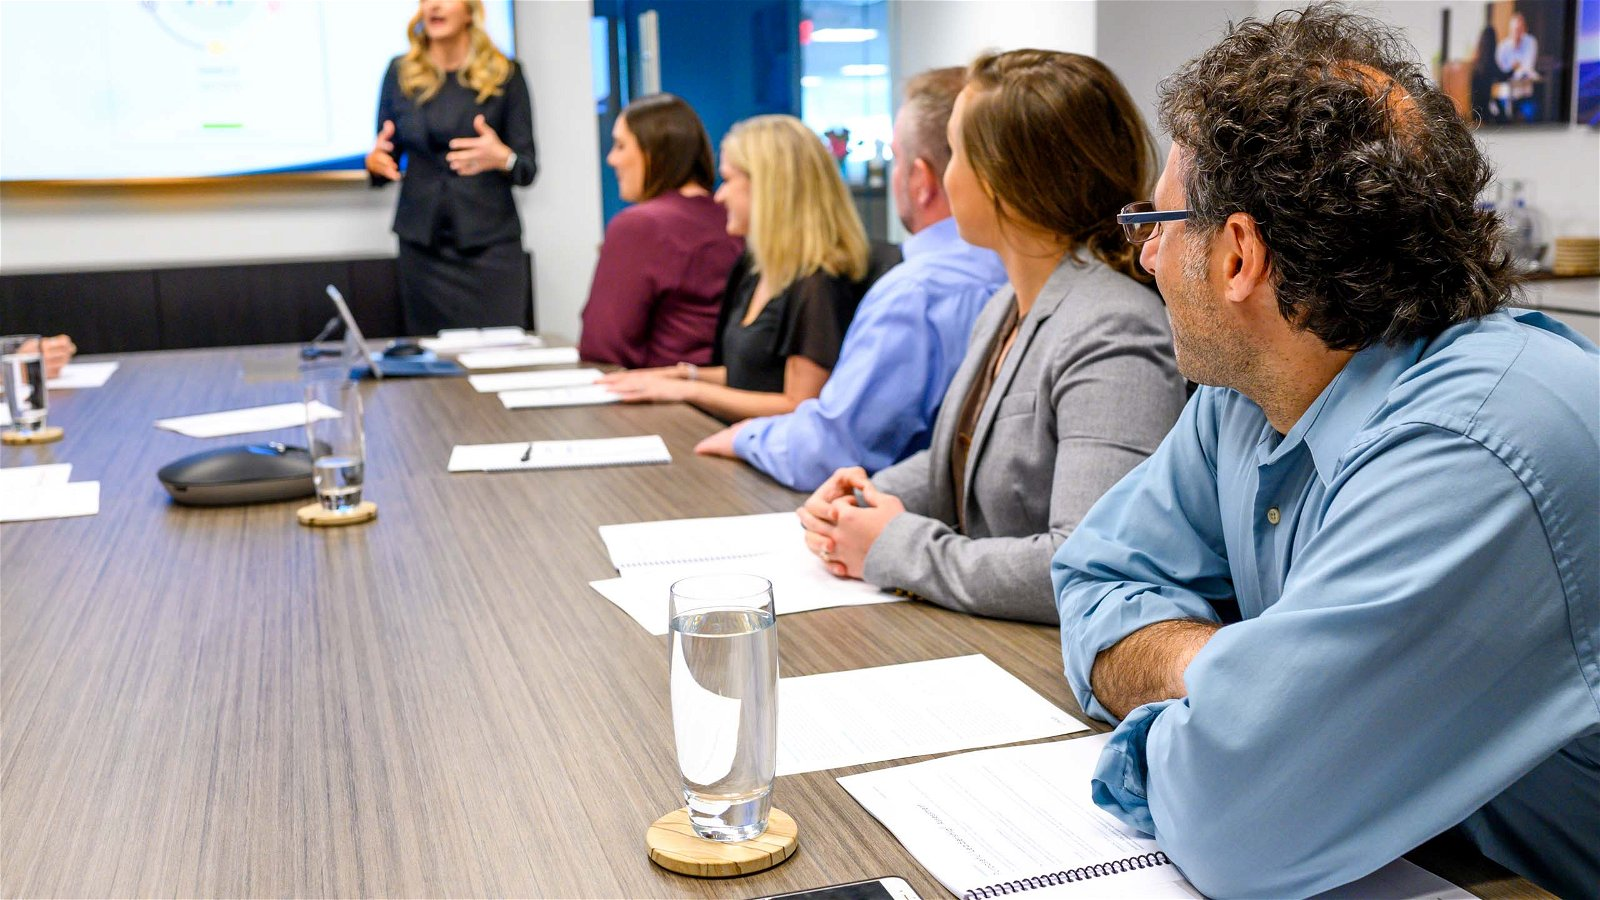 People sit around meeting table while woman presents